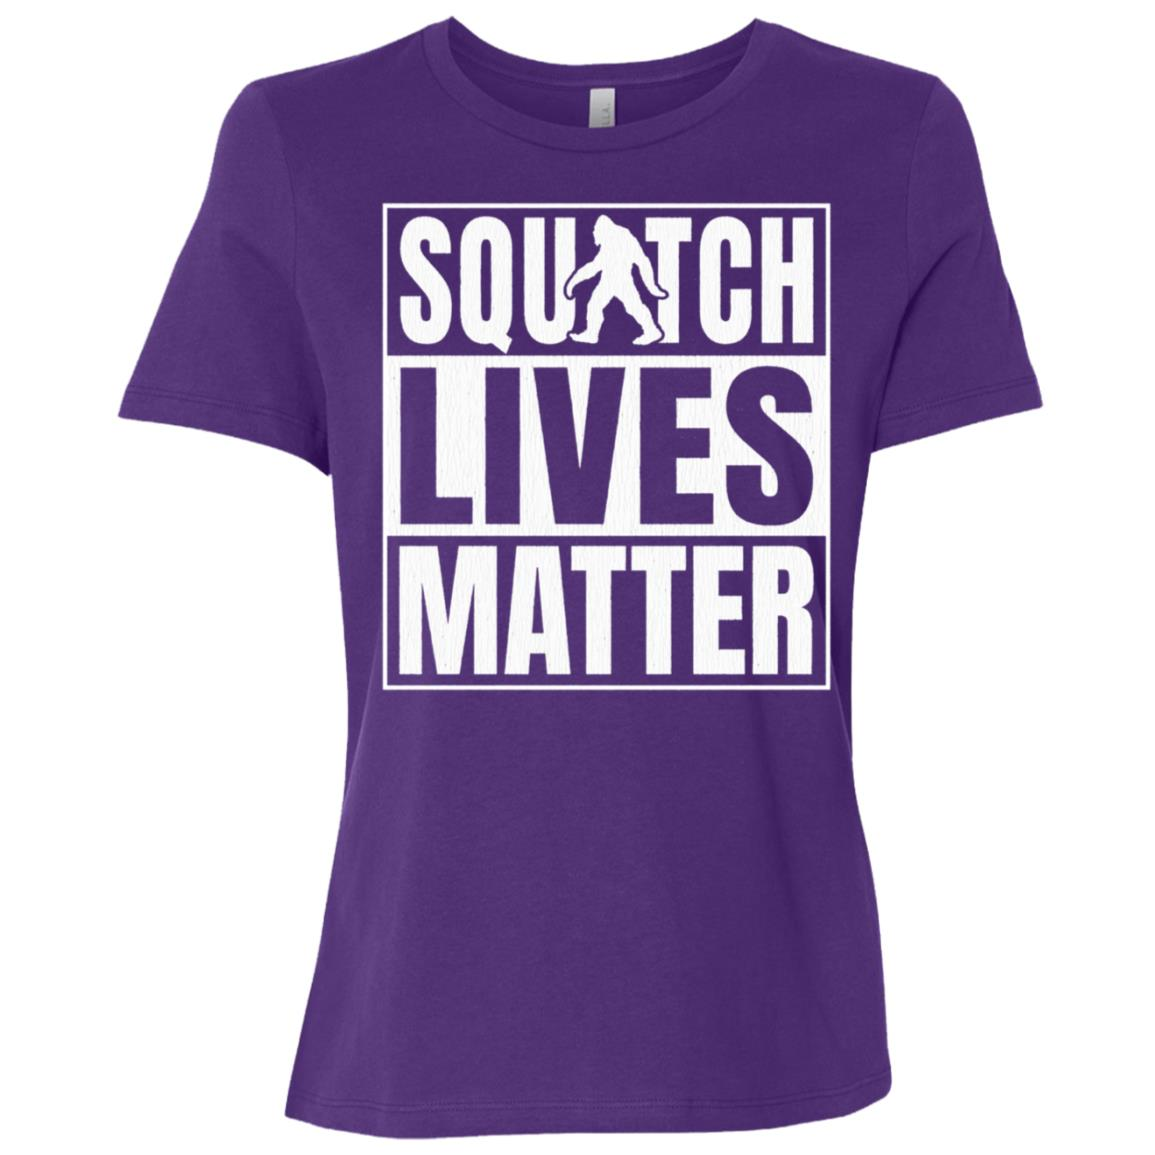 Bigfoot Yeti Sasquatch – Squatch Lives Matter Funny -1 Women Short Sleeve T-Shirt